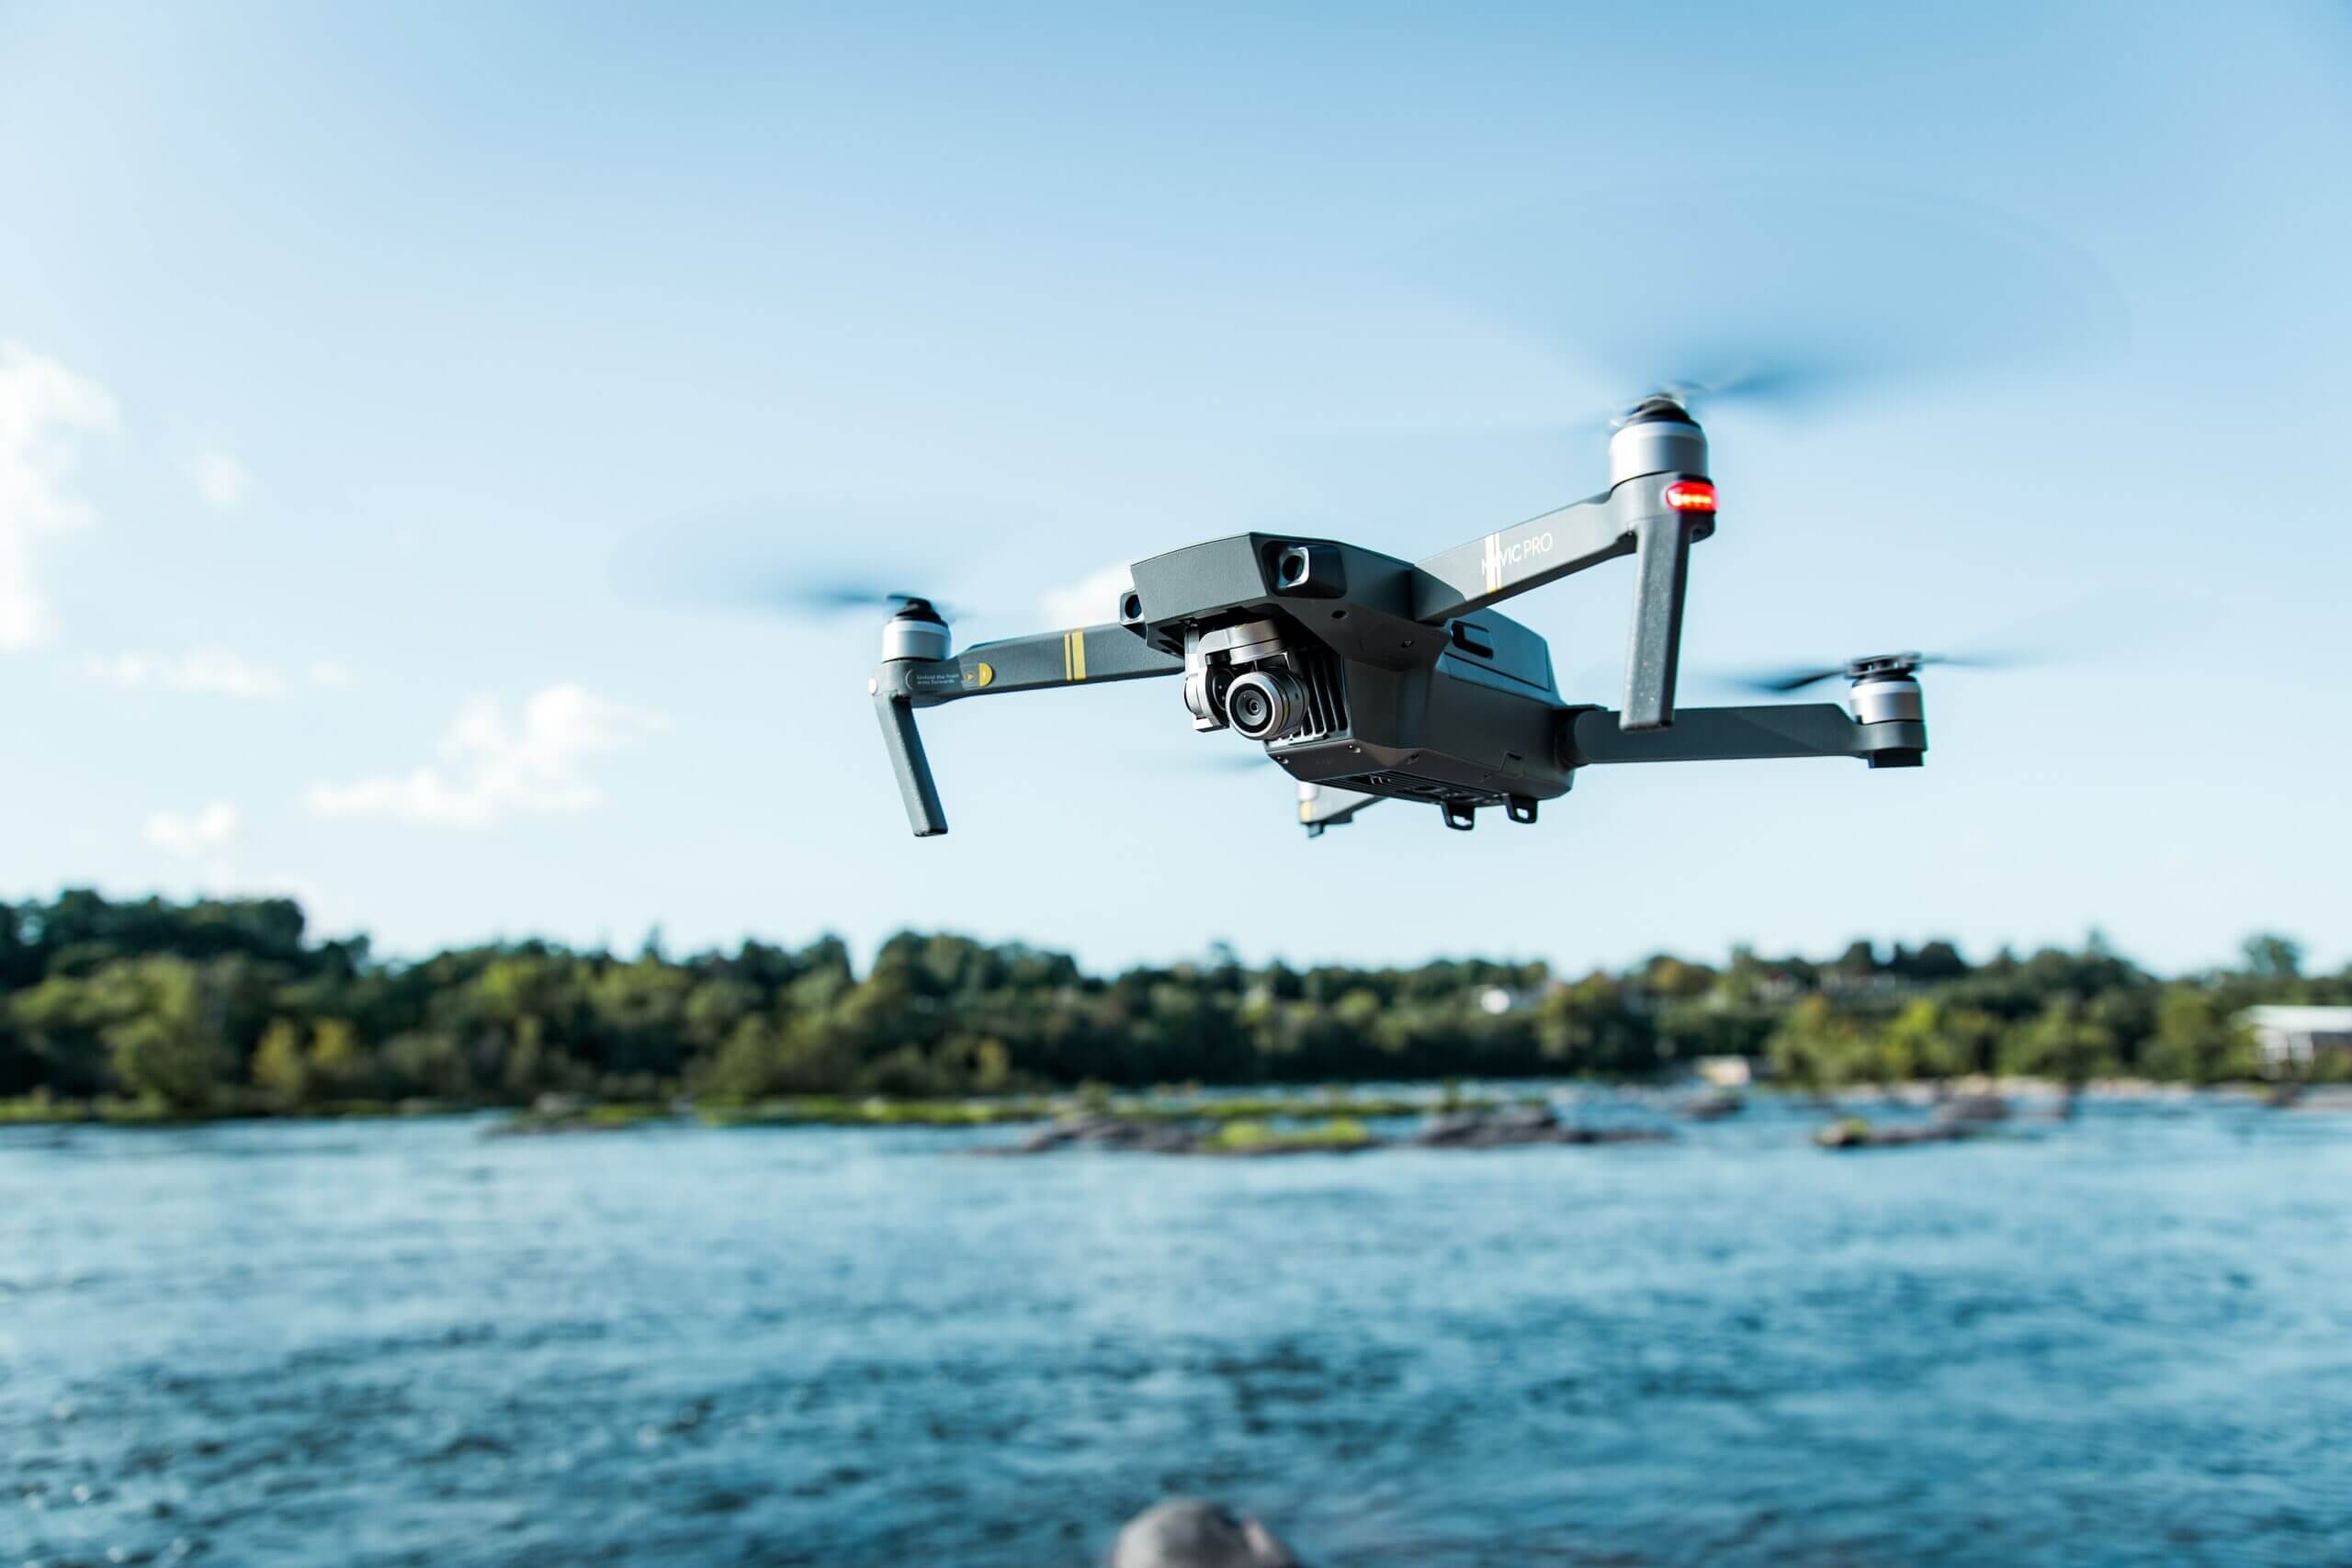 The everpresent drones embraced by millions of hobbyists are making inroads into corporate services. UAVs are often employed for mapping, aerial inspection and environmental research.